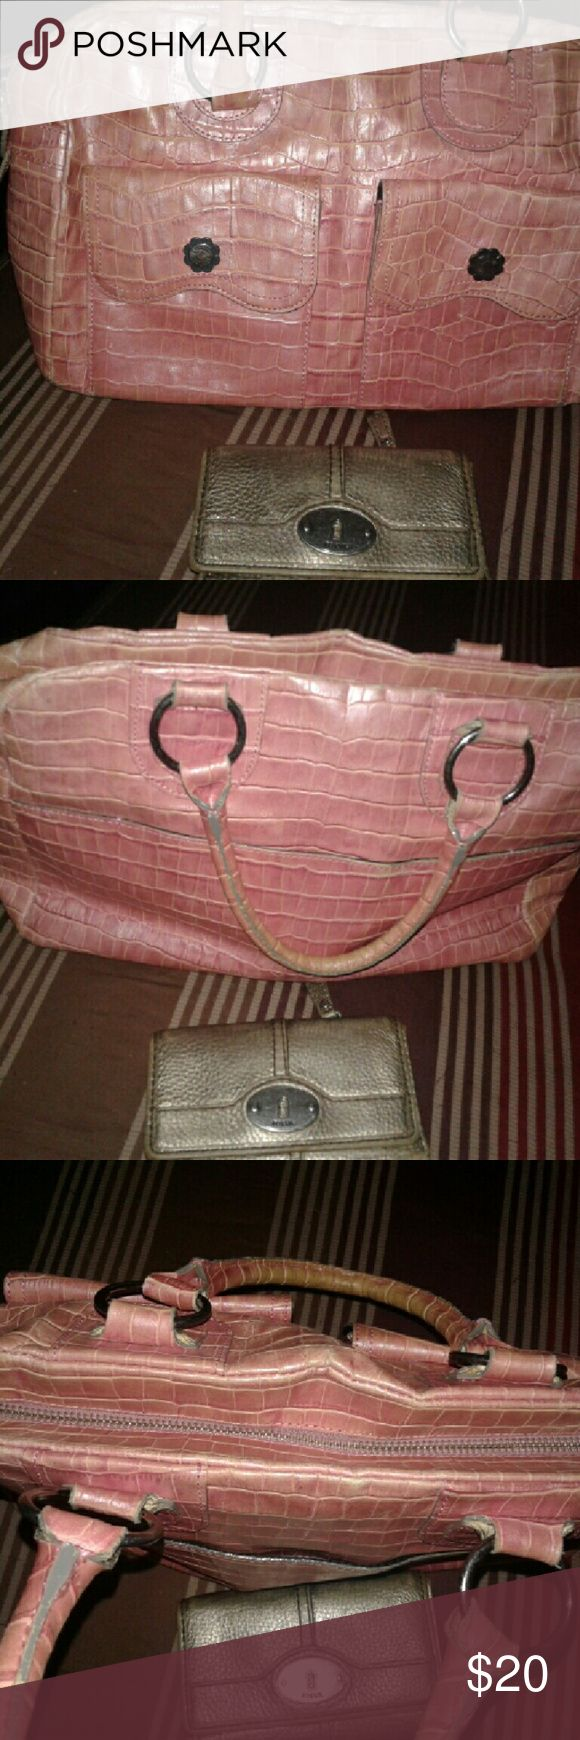 Anna Sui Pink Metallic Purse & Fossil Wallet Cute pair. Throwing in the wallet for free! Purse is leather and clean inside. Some normal wear to leather from handling. See pics. Anna Sui Bags